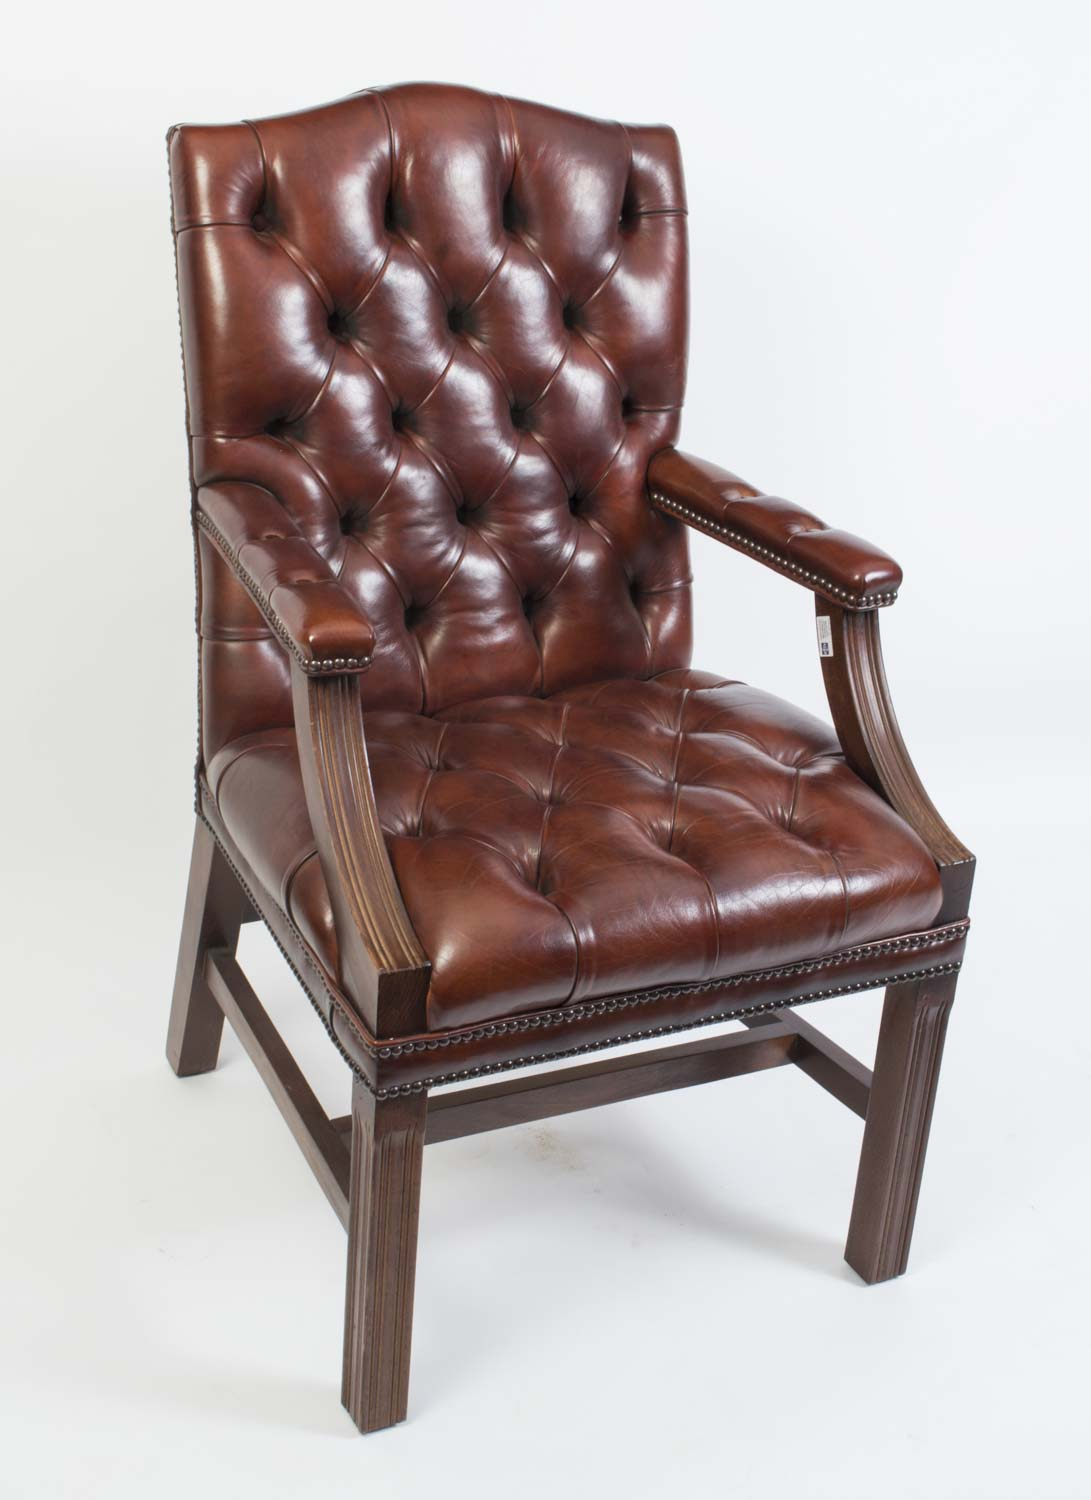 unique leather office chairs chair cover rentals in birmingham al english handmade gainsborough desk ref no